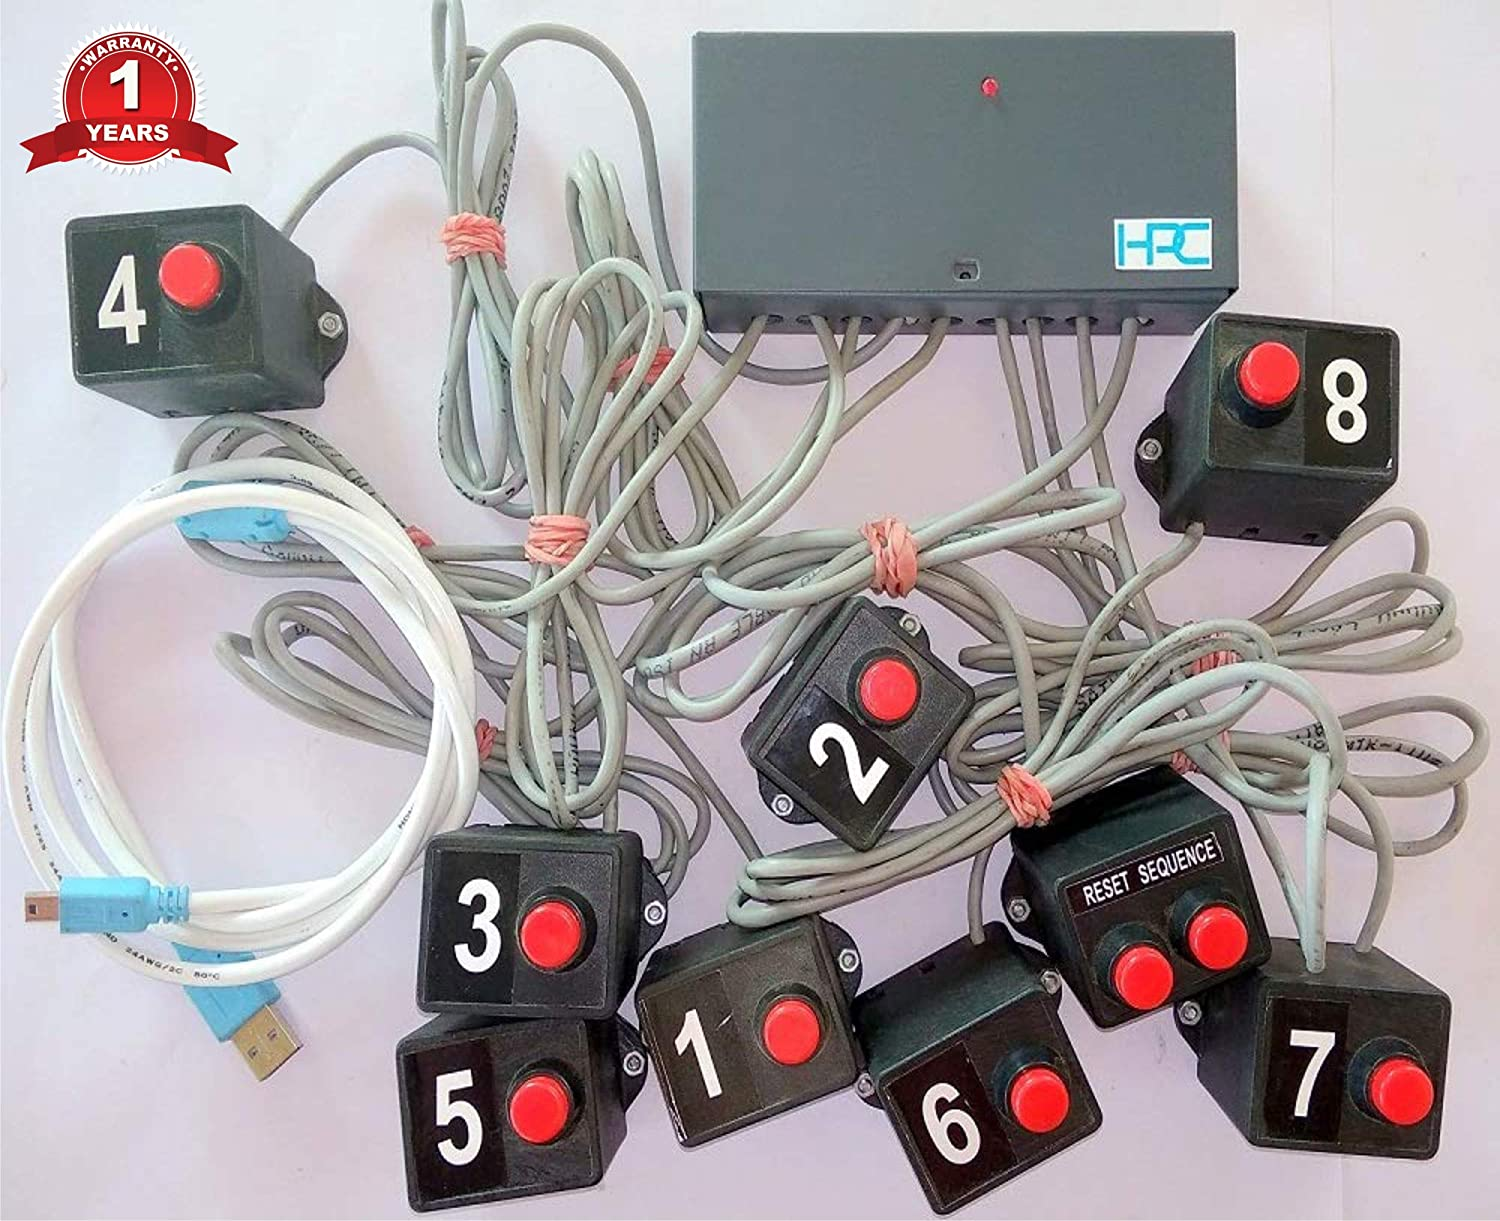 Swell Buy 8 Player Quiz Game Buzzer System With 25 Ft Wires And Windows Wiring Cloud Hisonuggs Outletorg